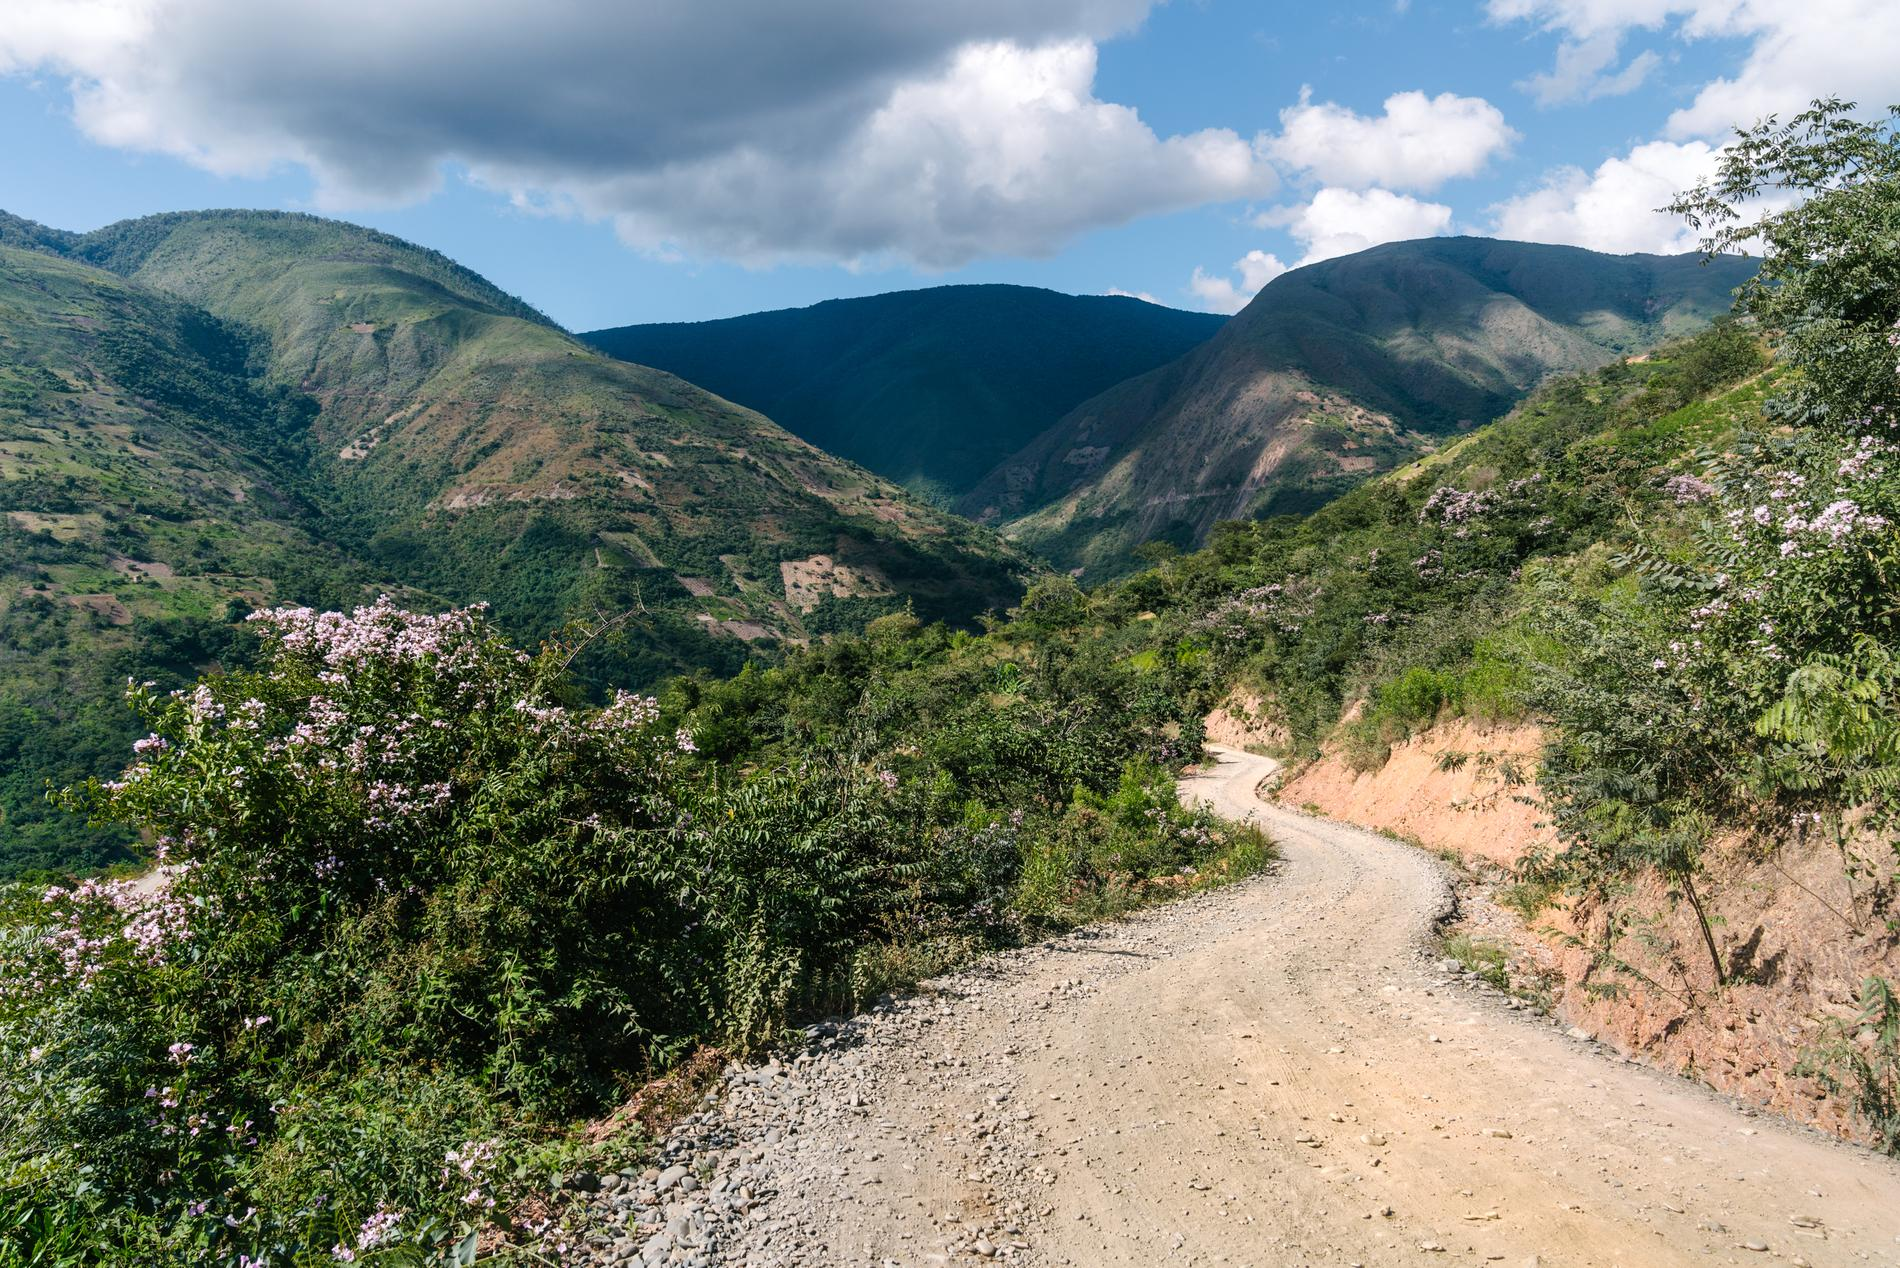 Steep, Dusty, and Humid are the first 3 words that come to mind when I think of the Yungas